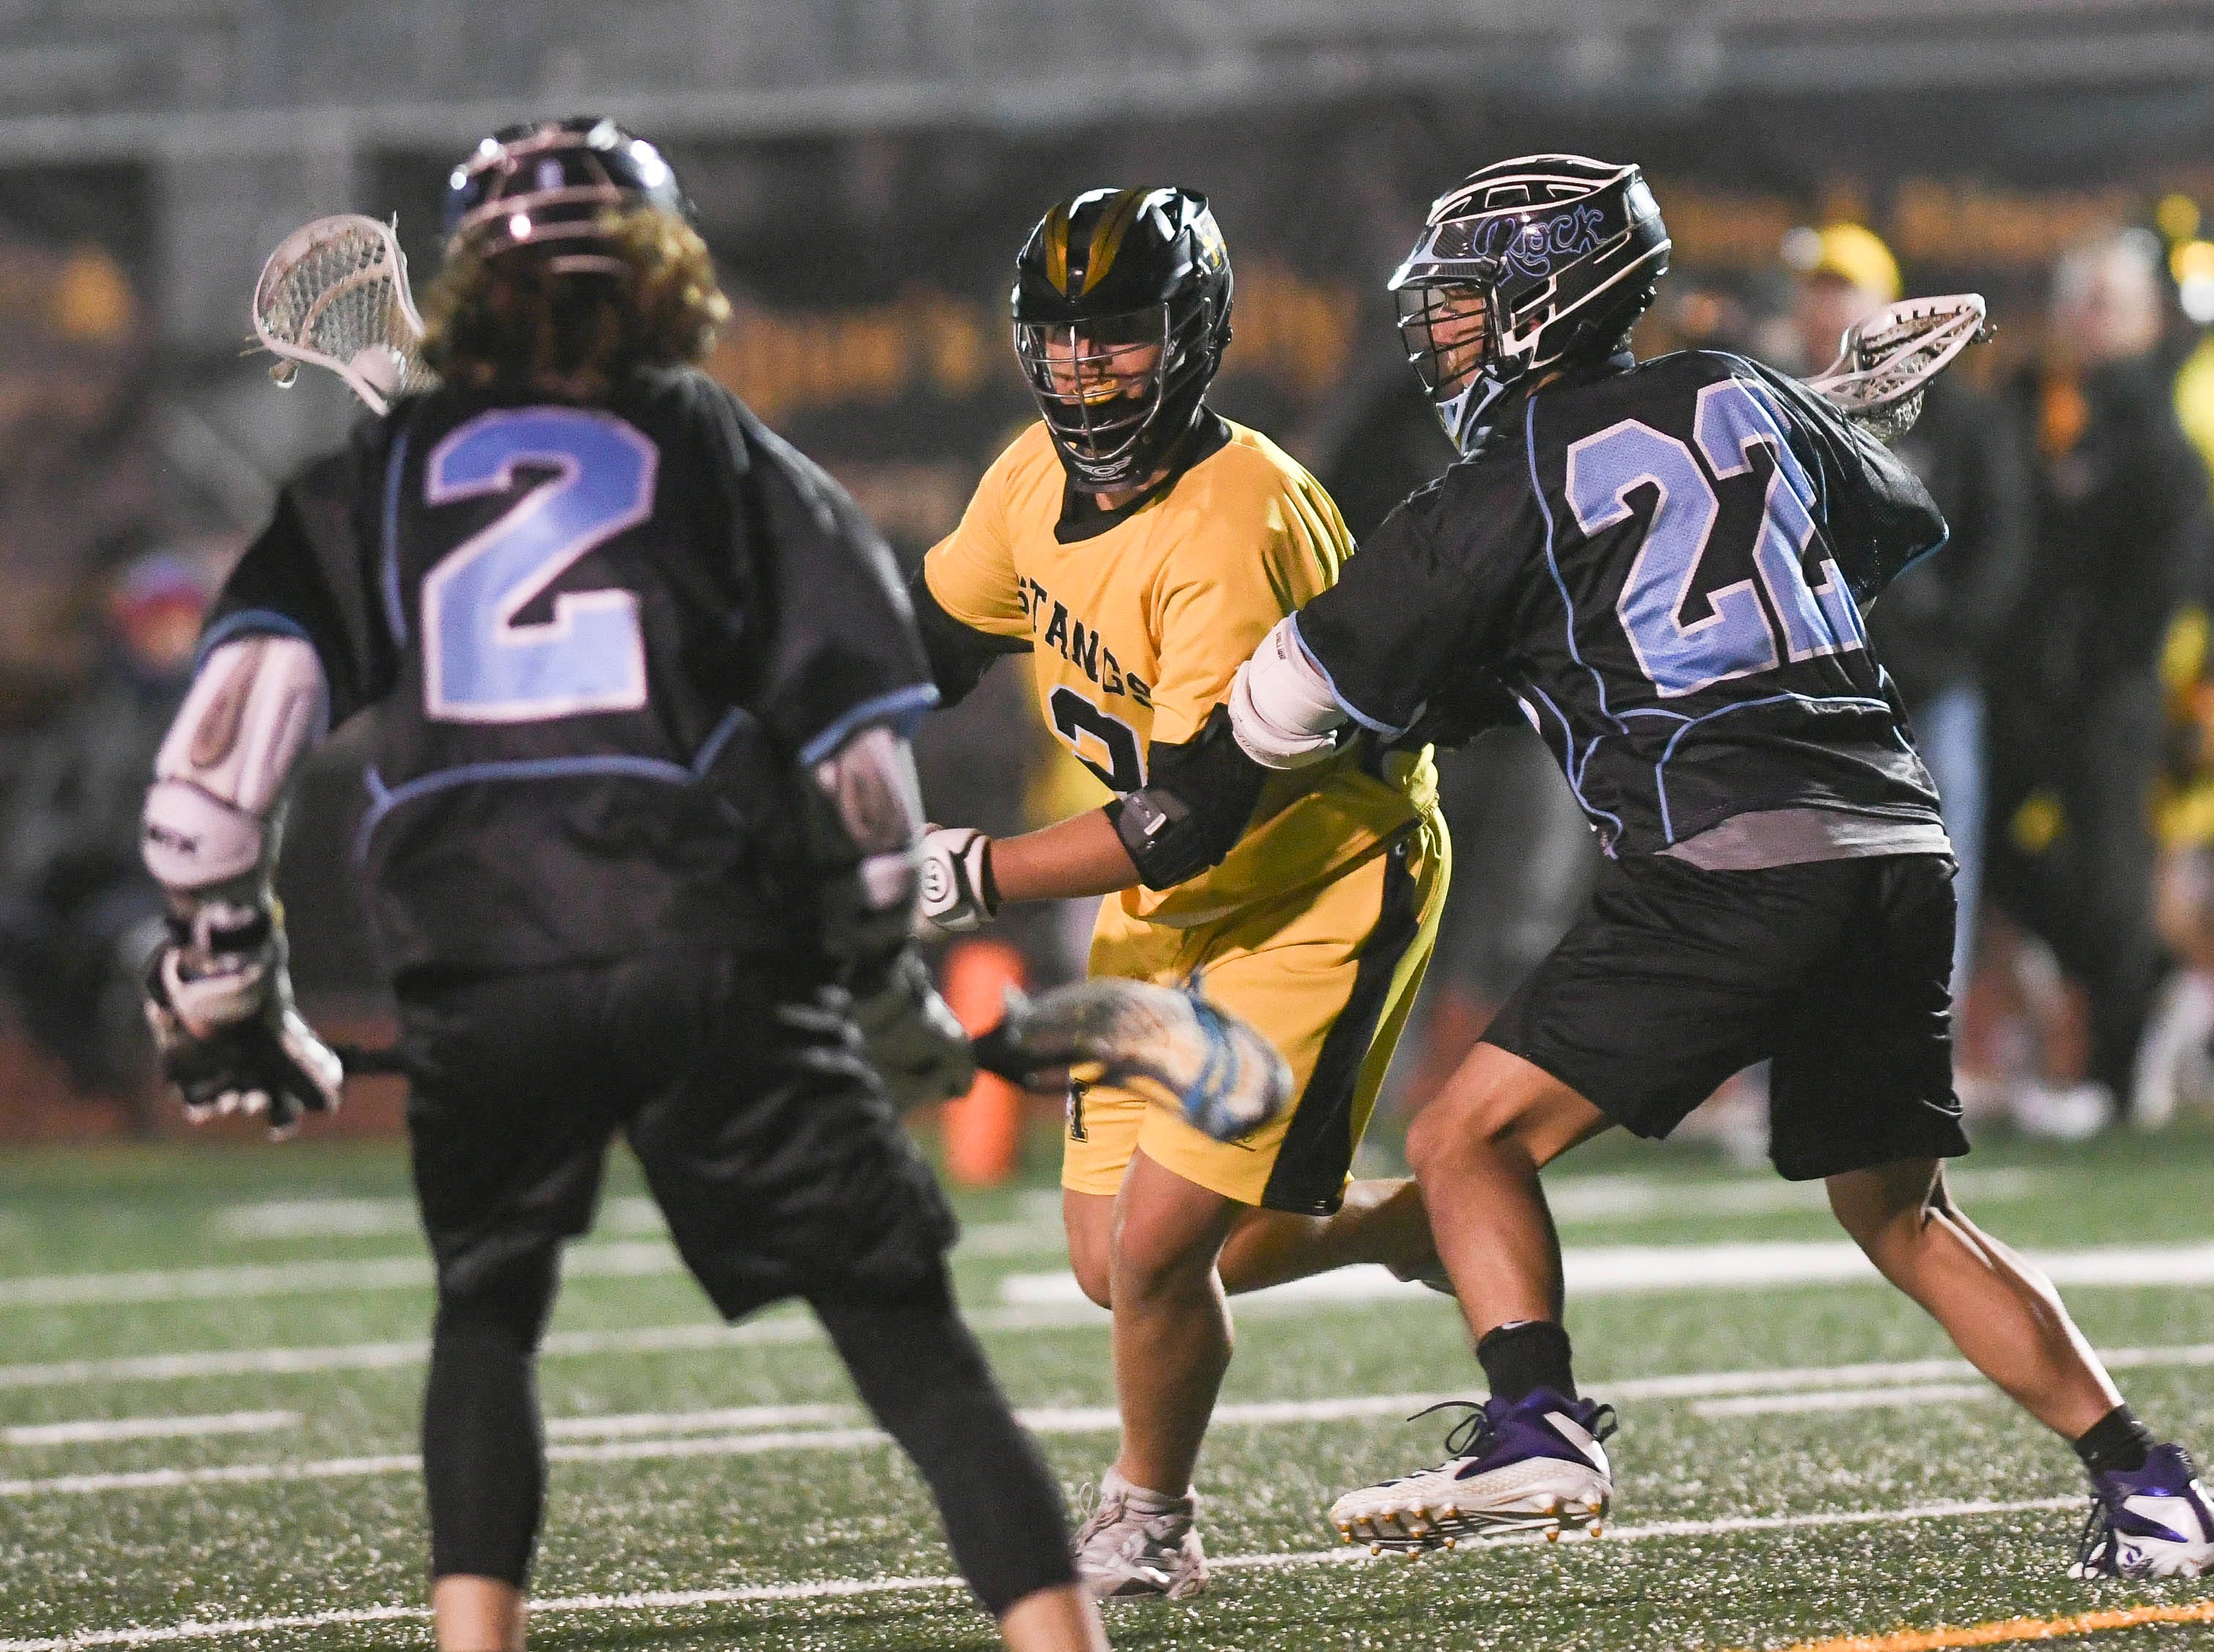 Gavin Stephenson of Merritt Island is guarded by Cade Madonna (2) and Tyler Figueroa of Rockledge during Wednesday's game.